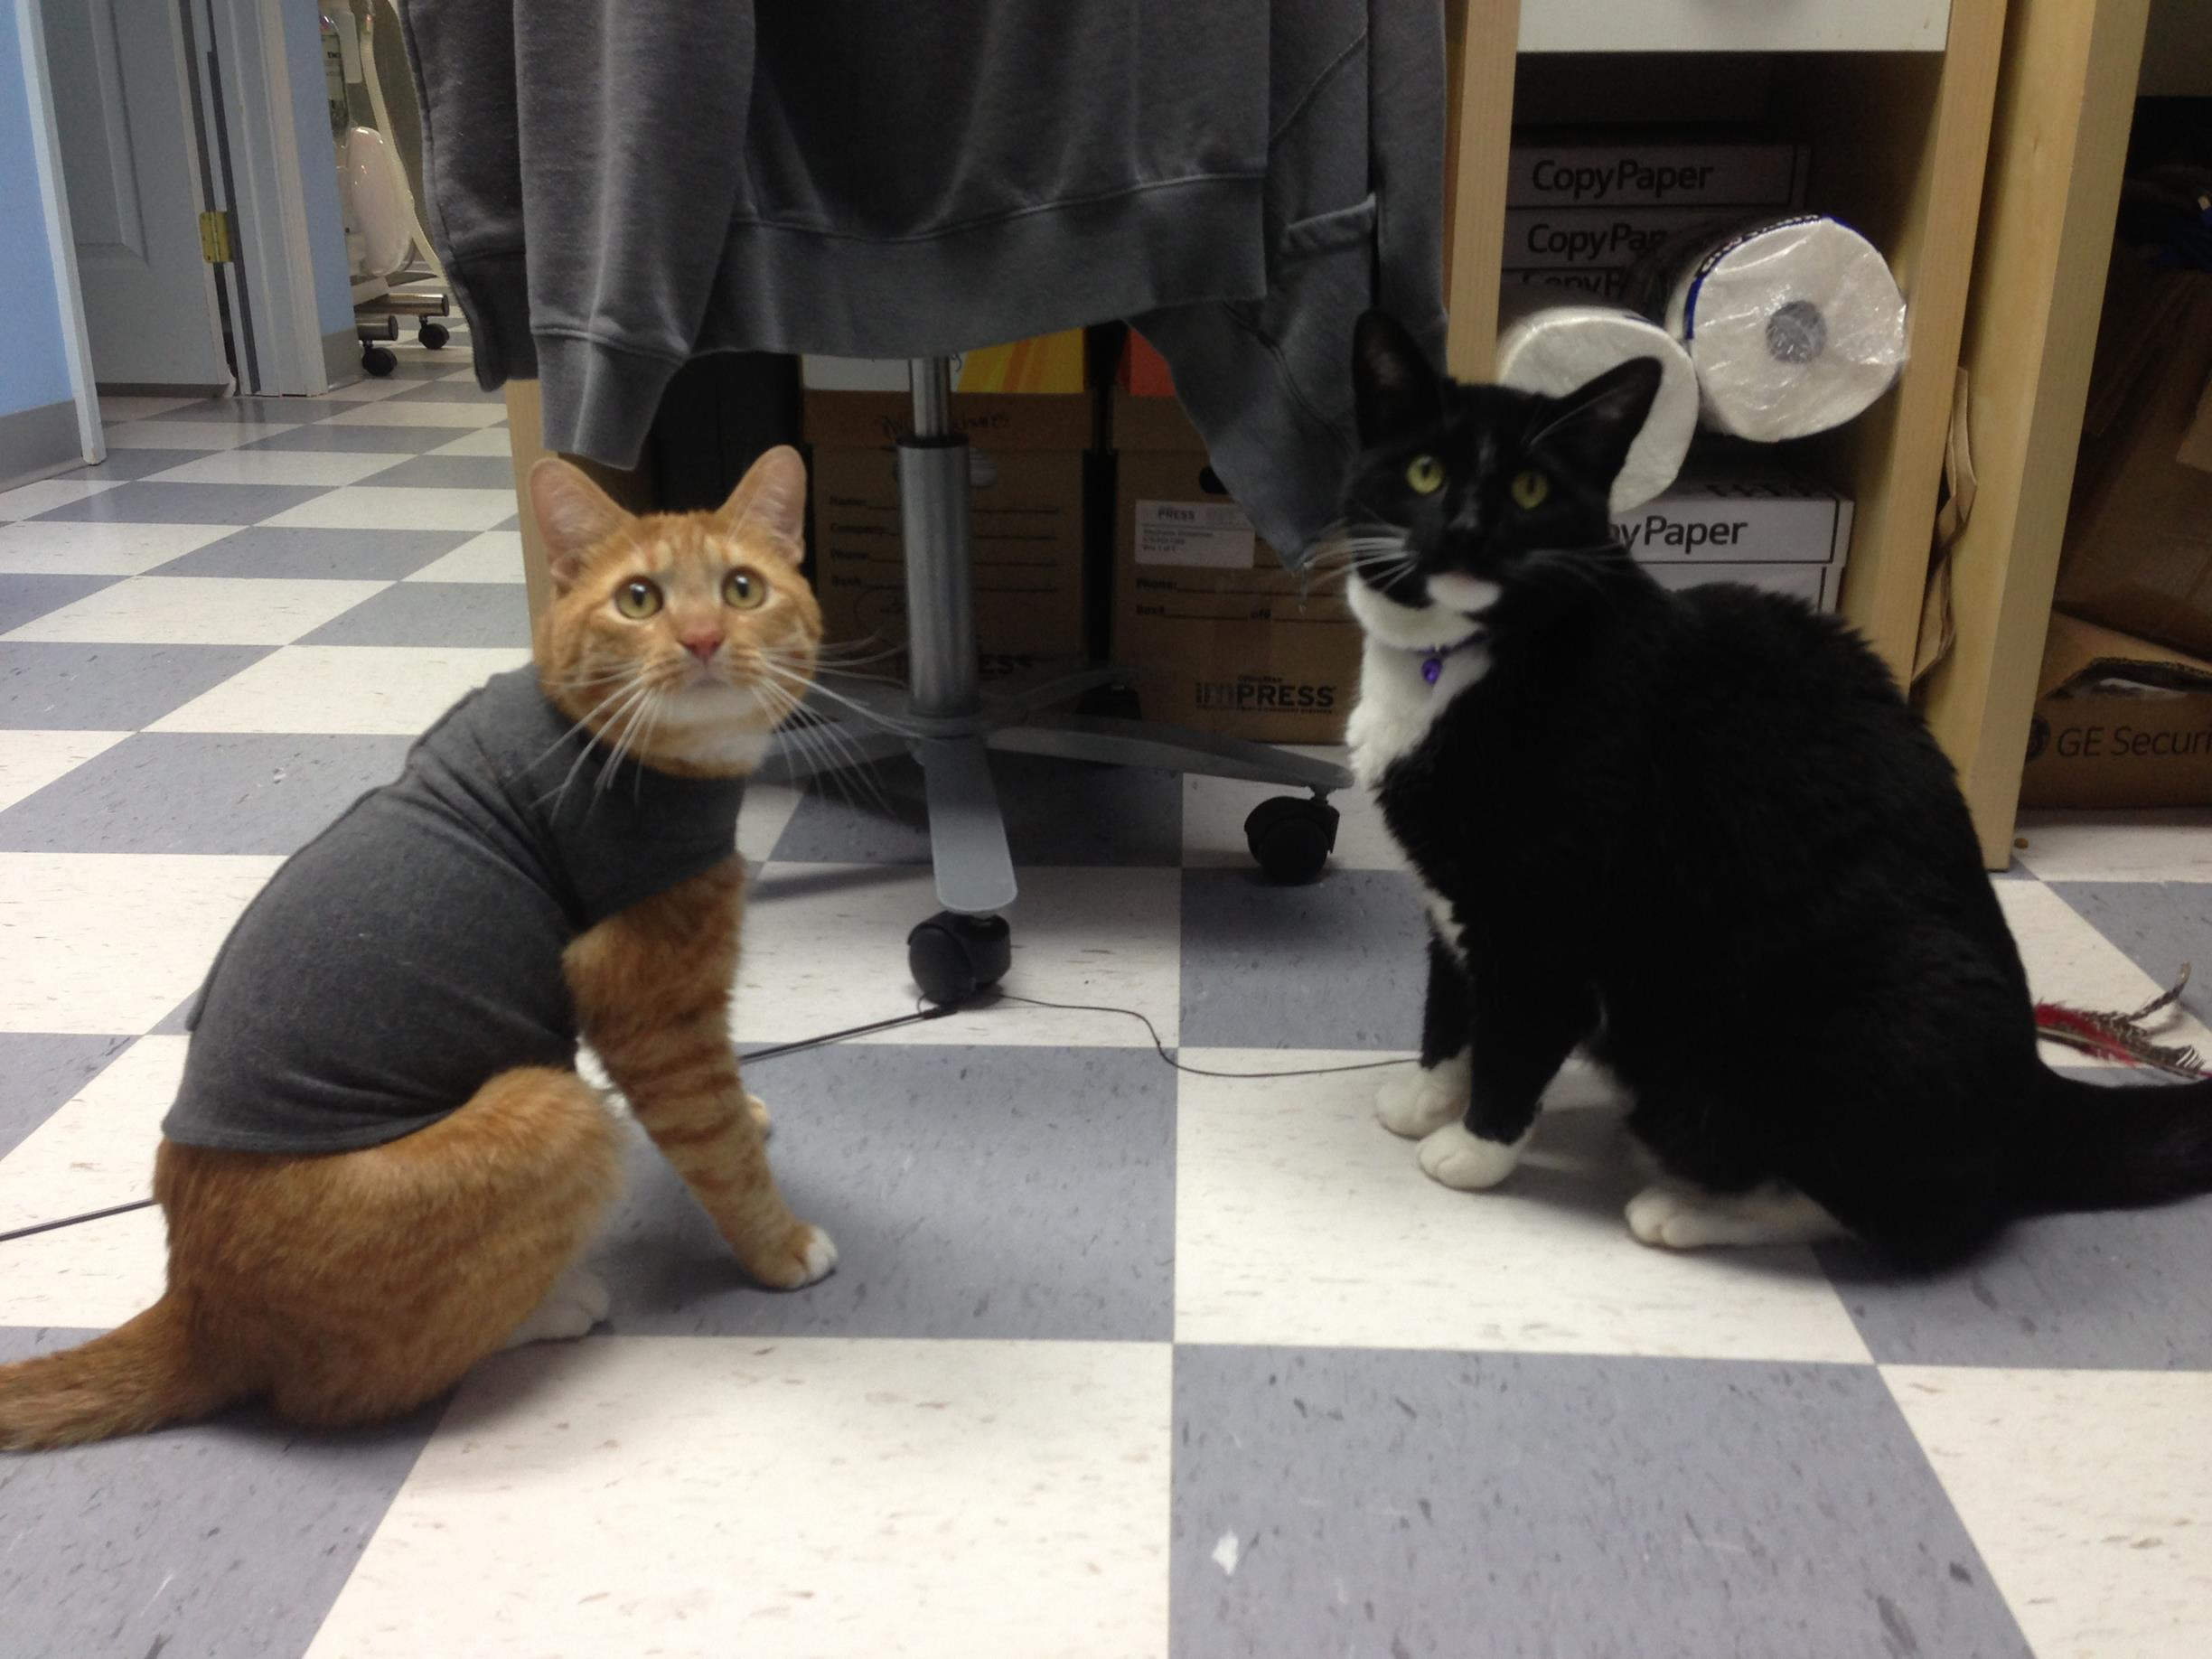 Thundershirt being used to humble the aggressive cat.